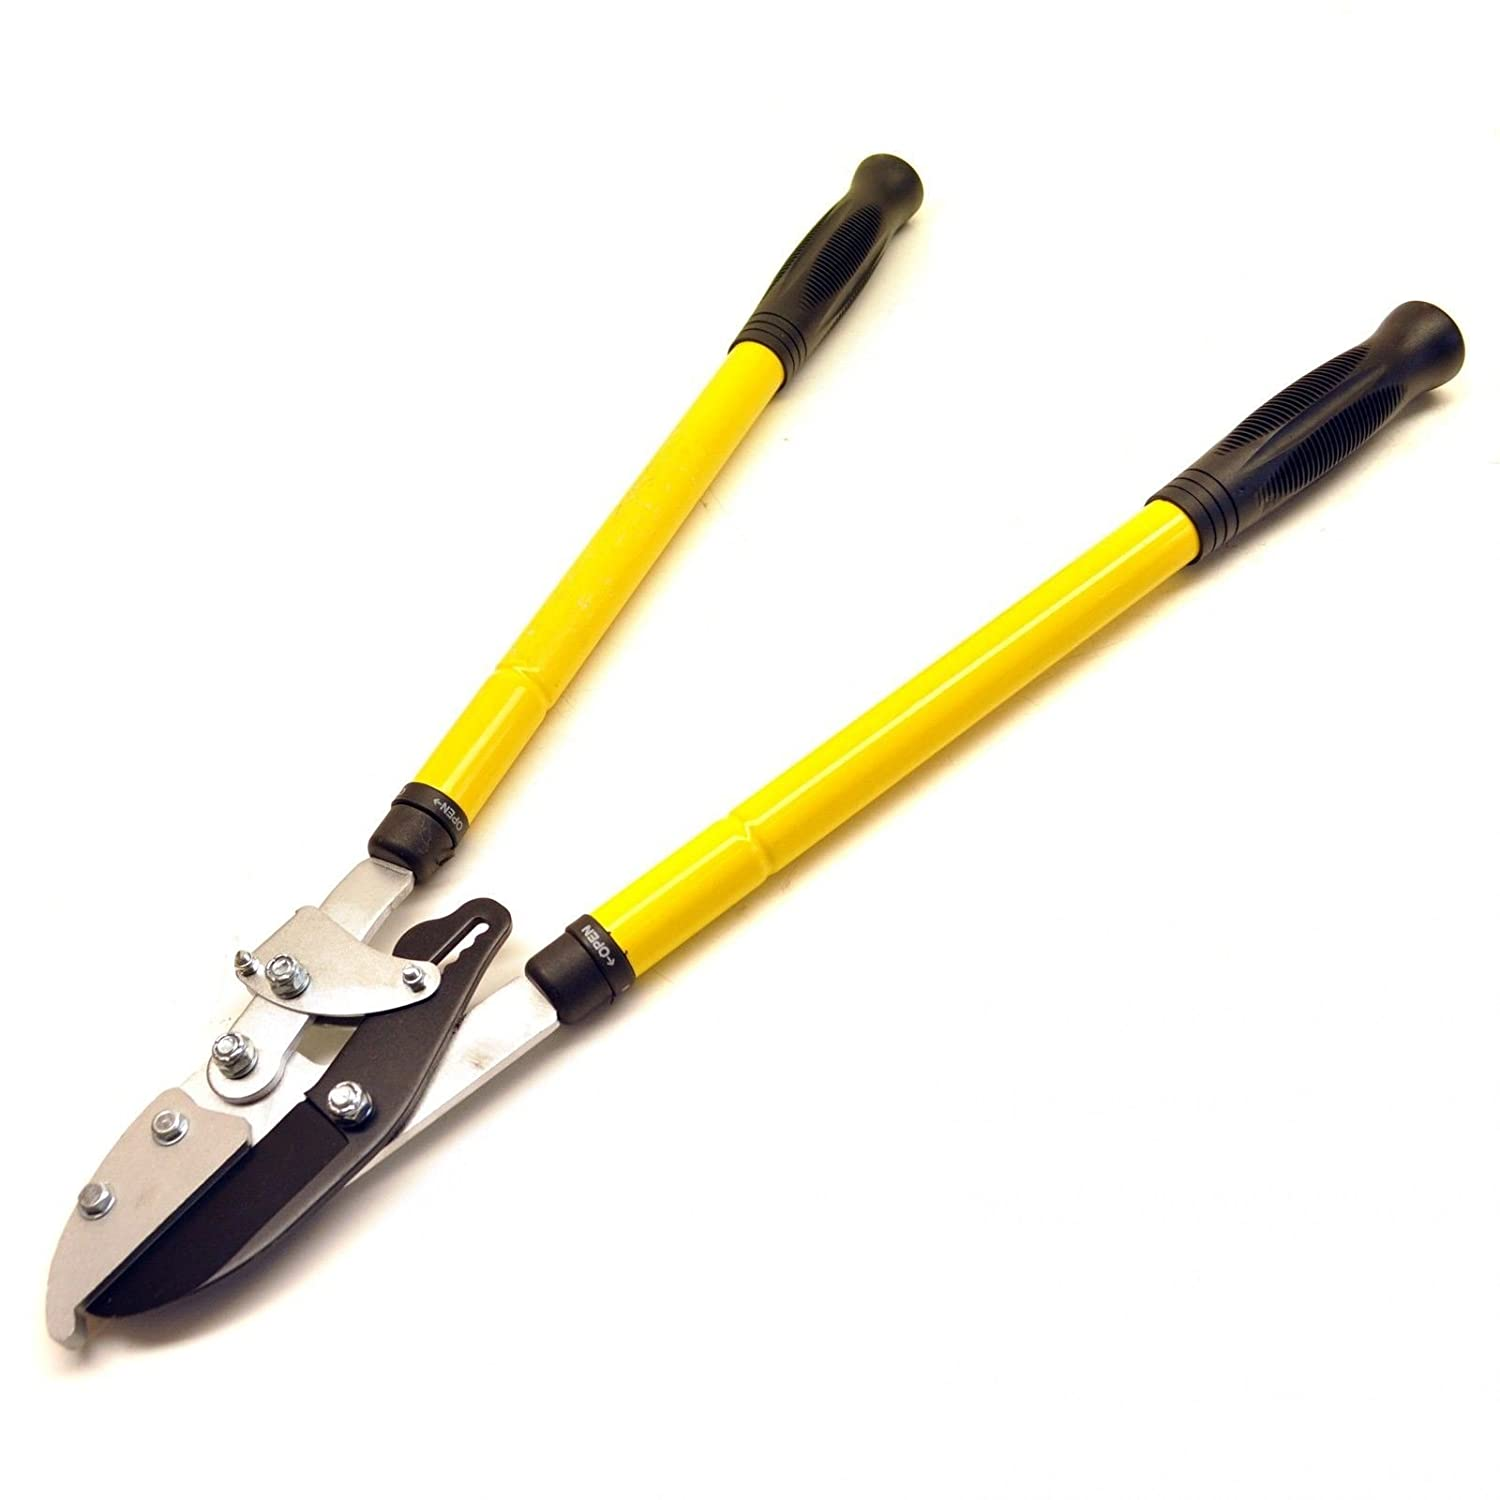 Ratchet Anvil Loppers Cutters Telescopic Extendable Handles Shears GAR58 AB Tools